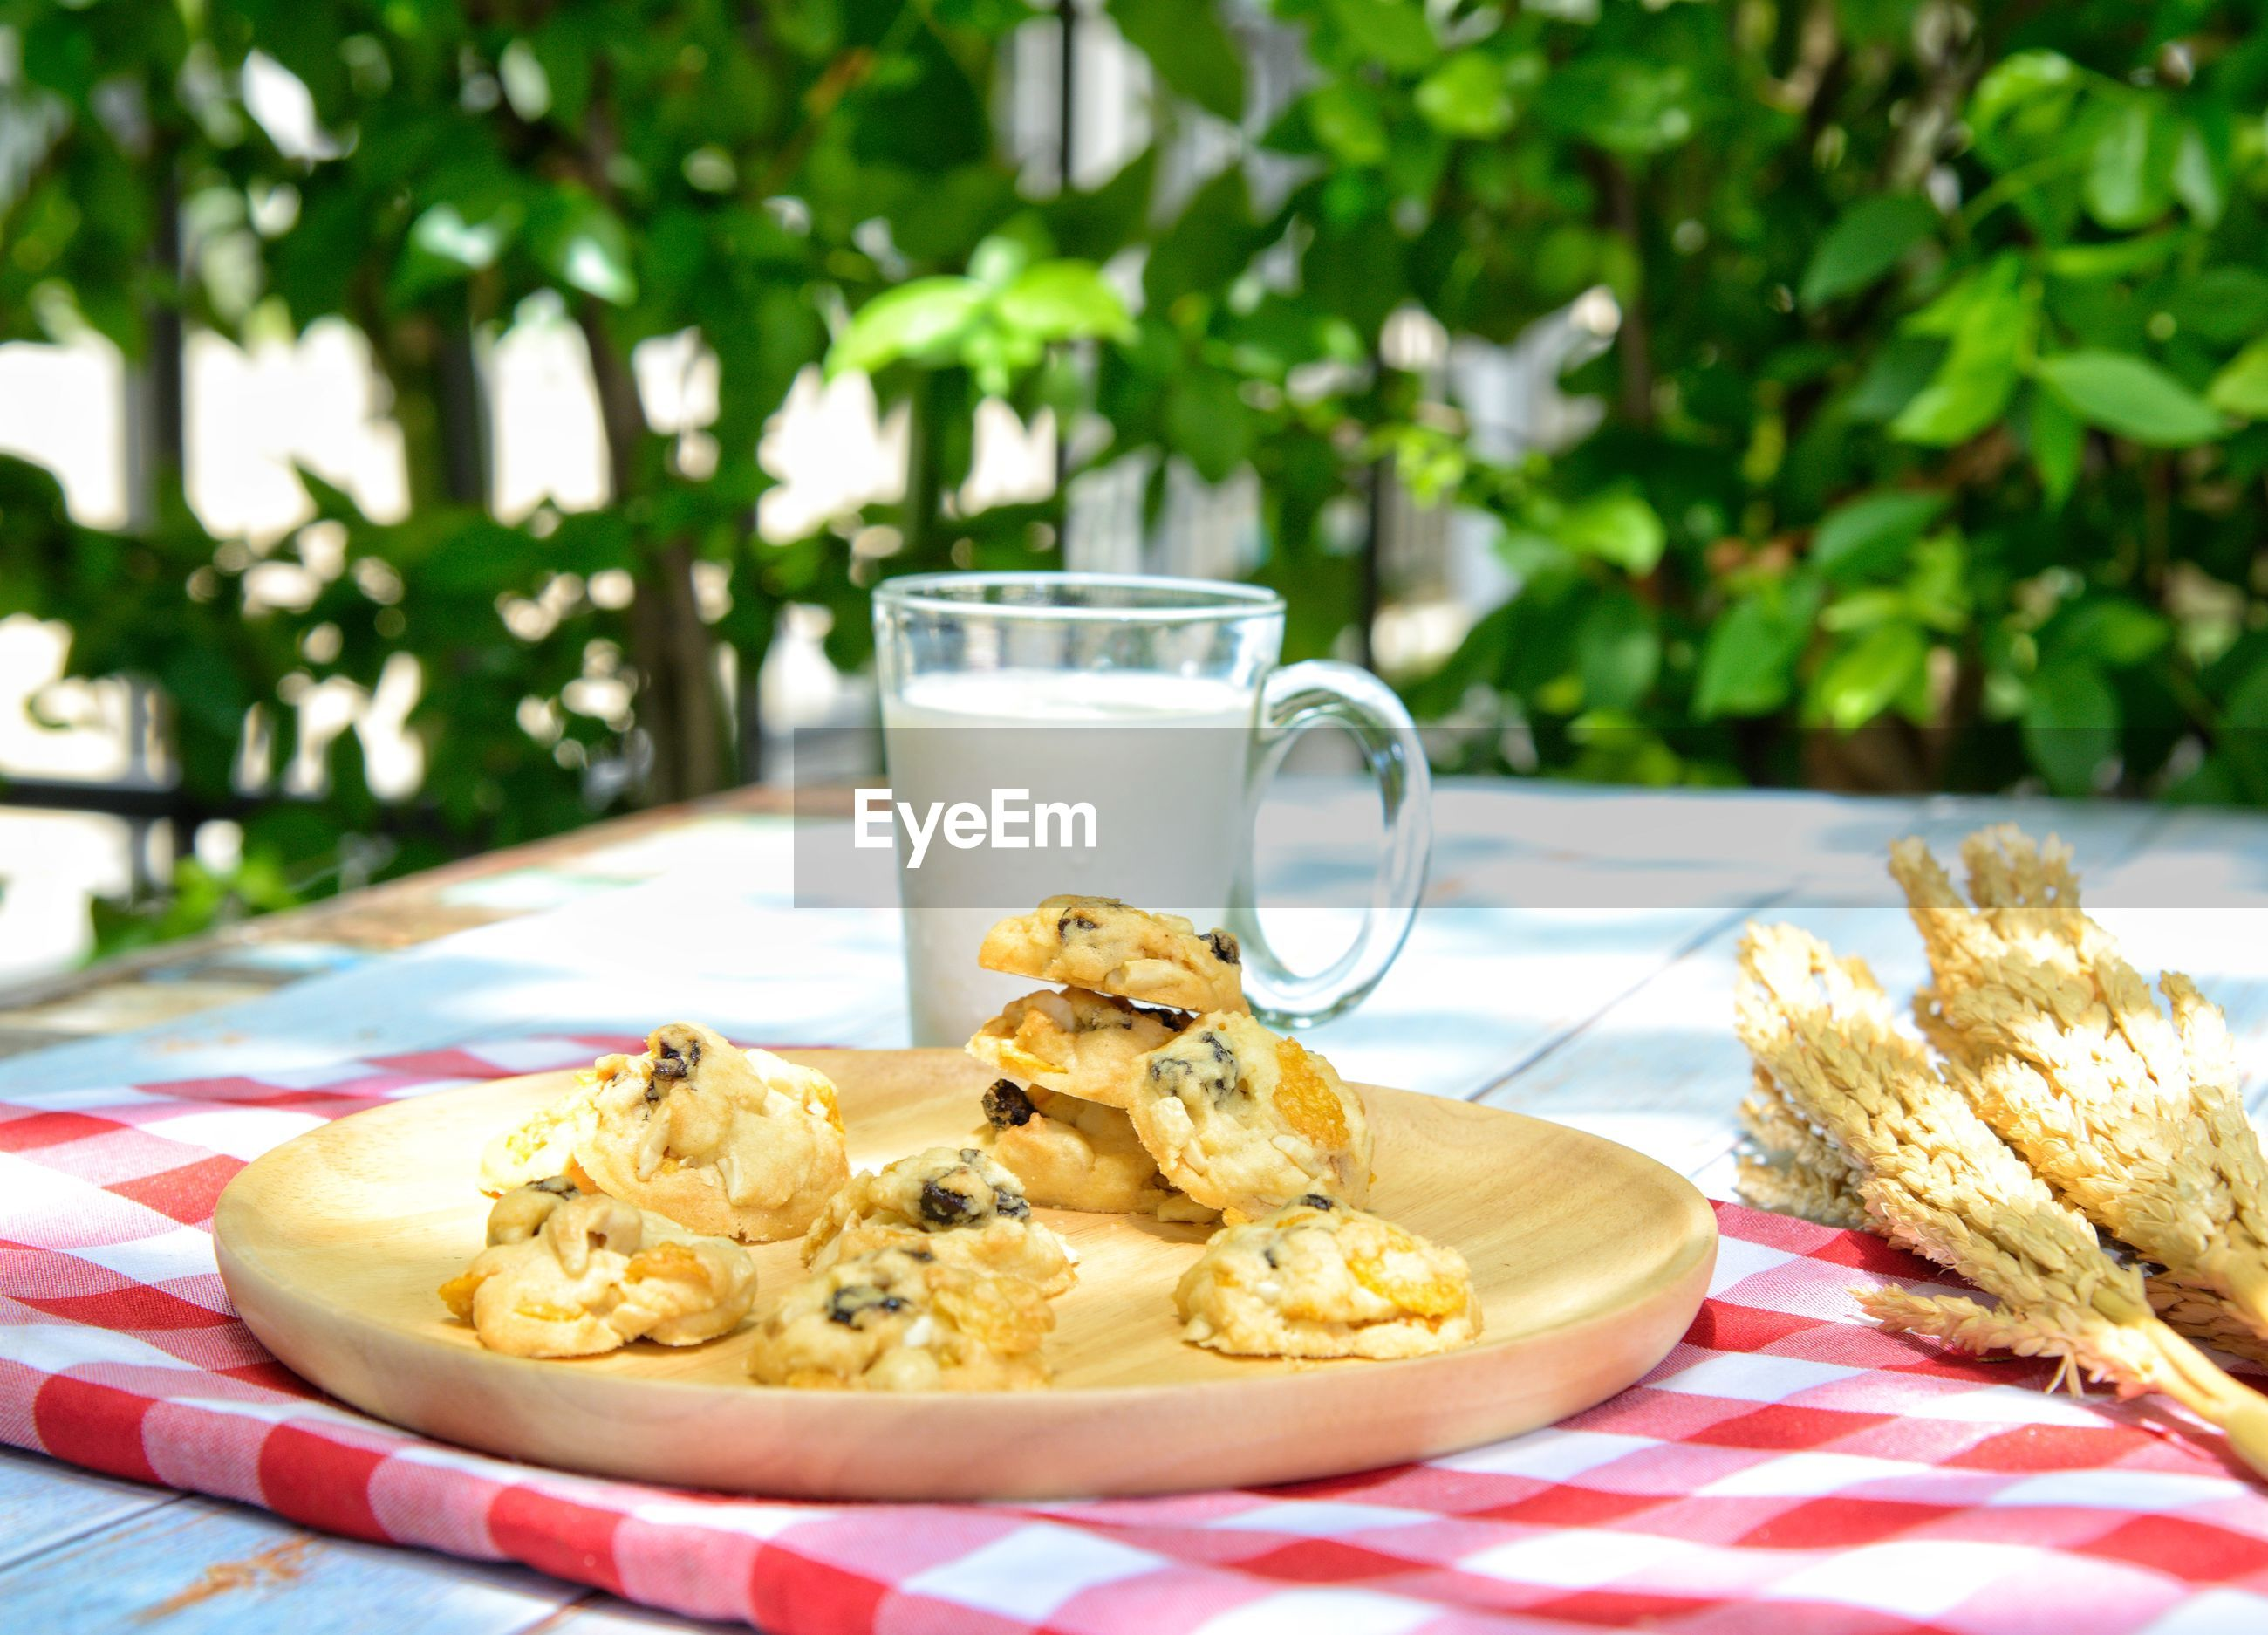 Butter cookies with milk and tasty and delicious beverages are placed on wooden trays